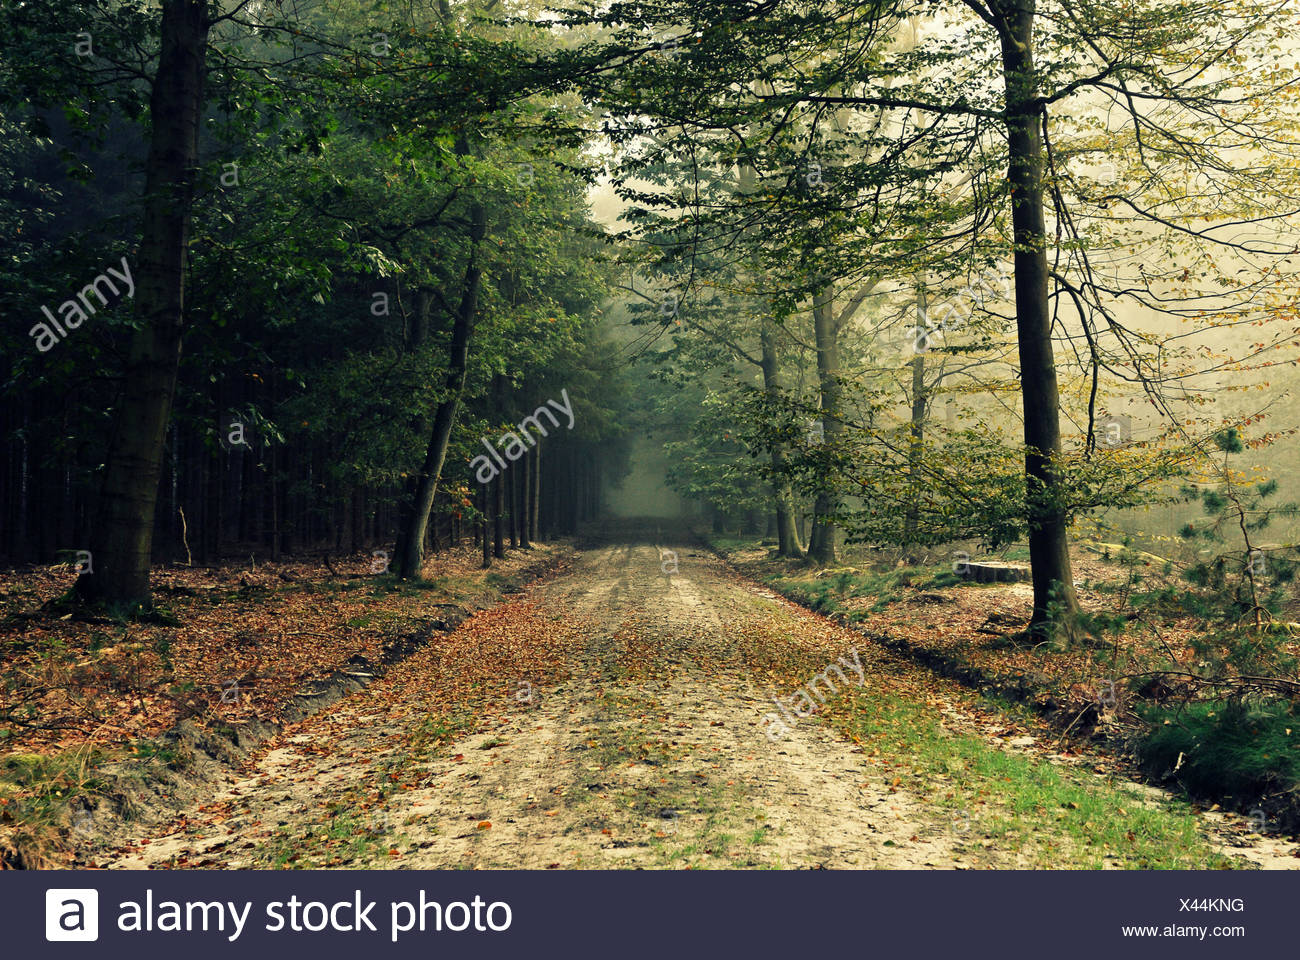 Netherlands, Odoorn, Dirt road in forest - Stock Image